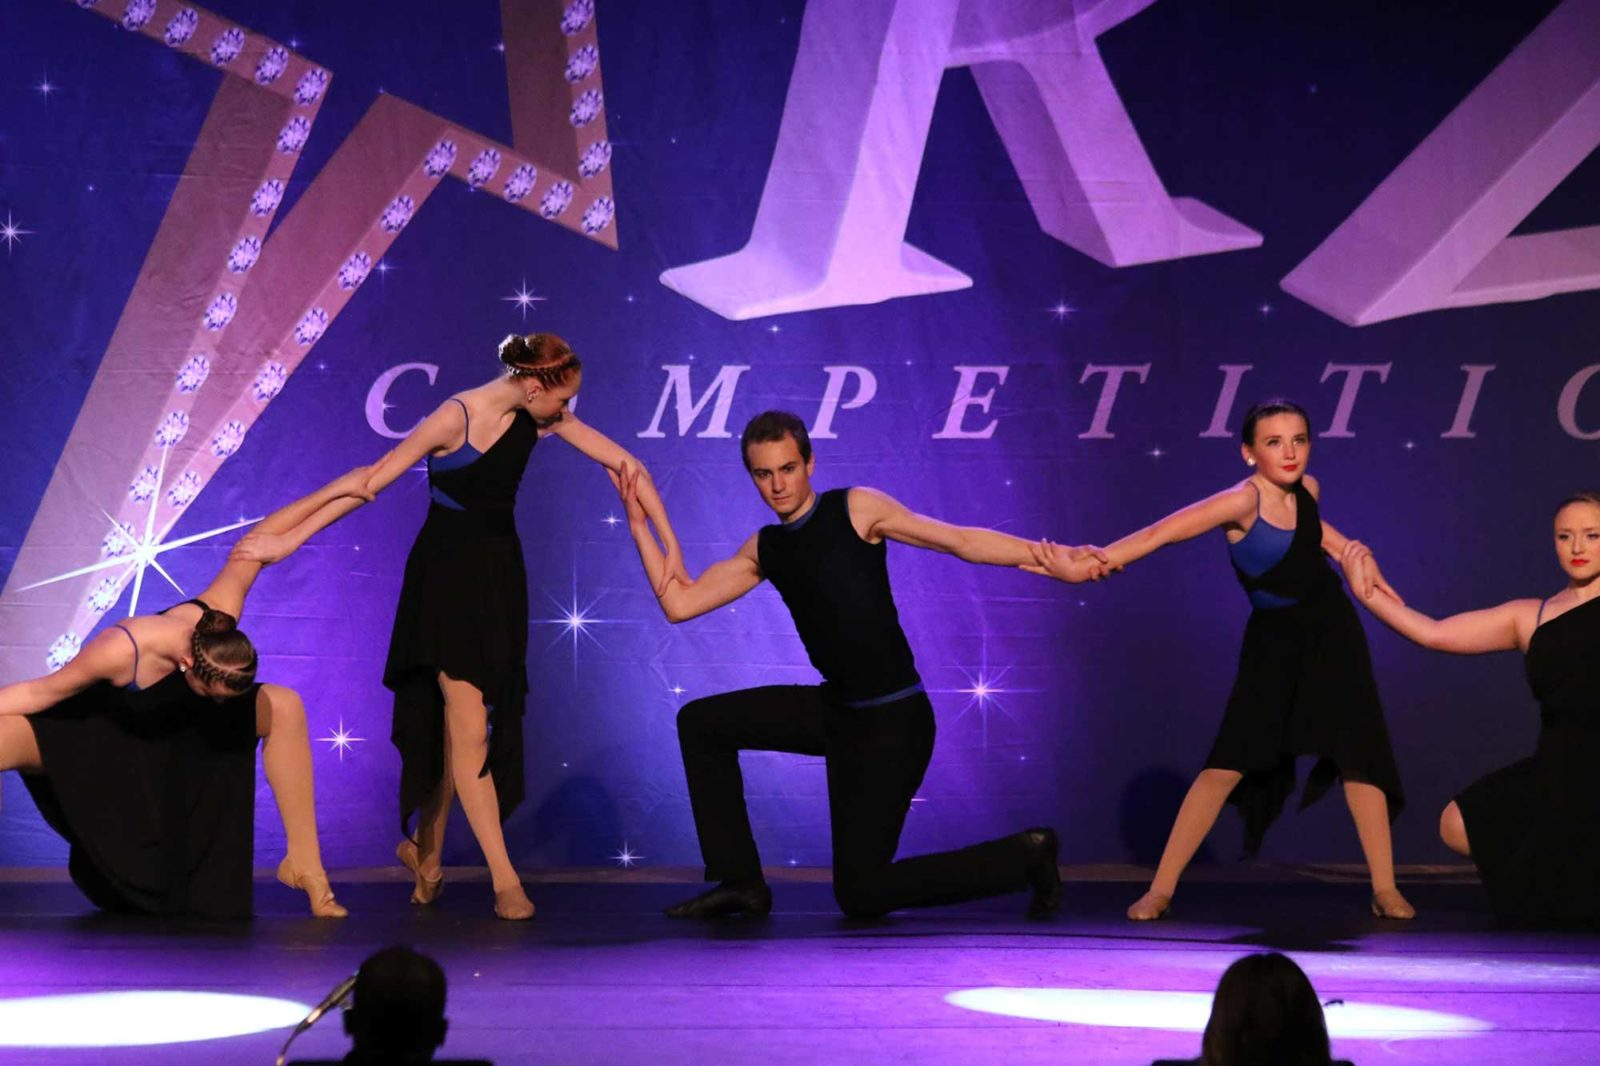 Dancers performing at a dance competition